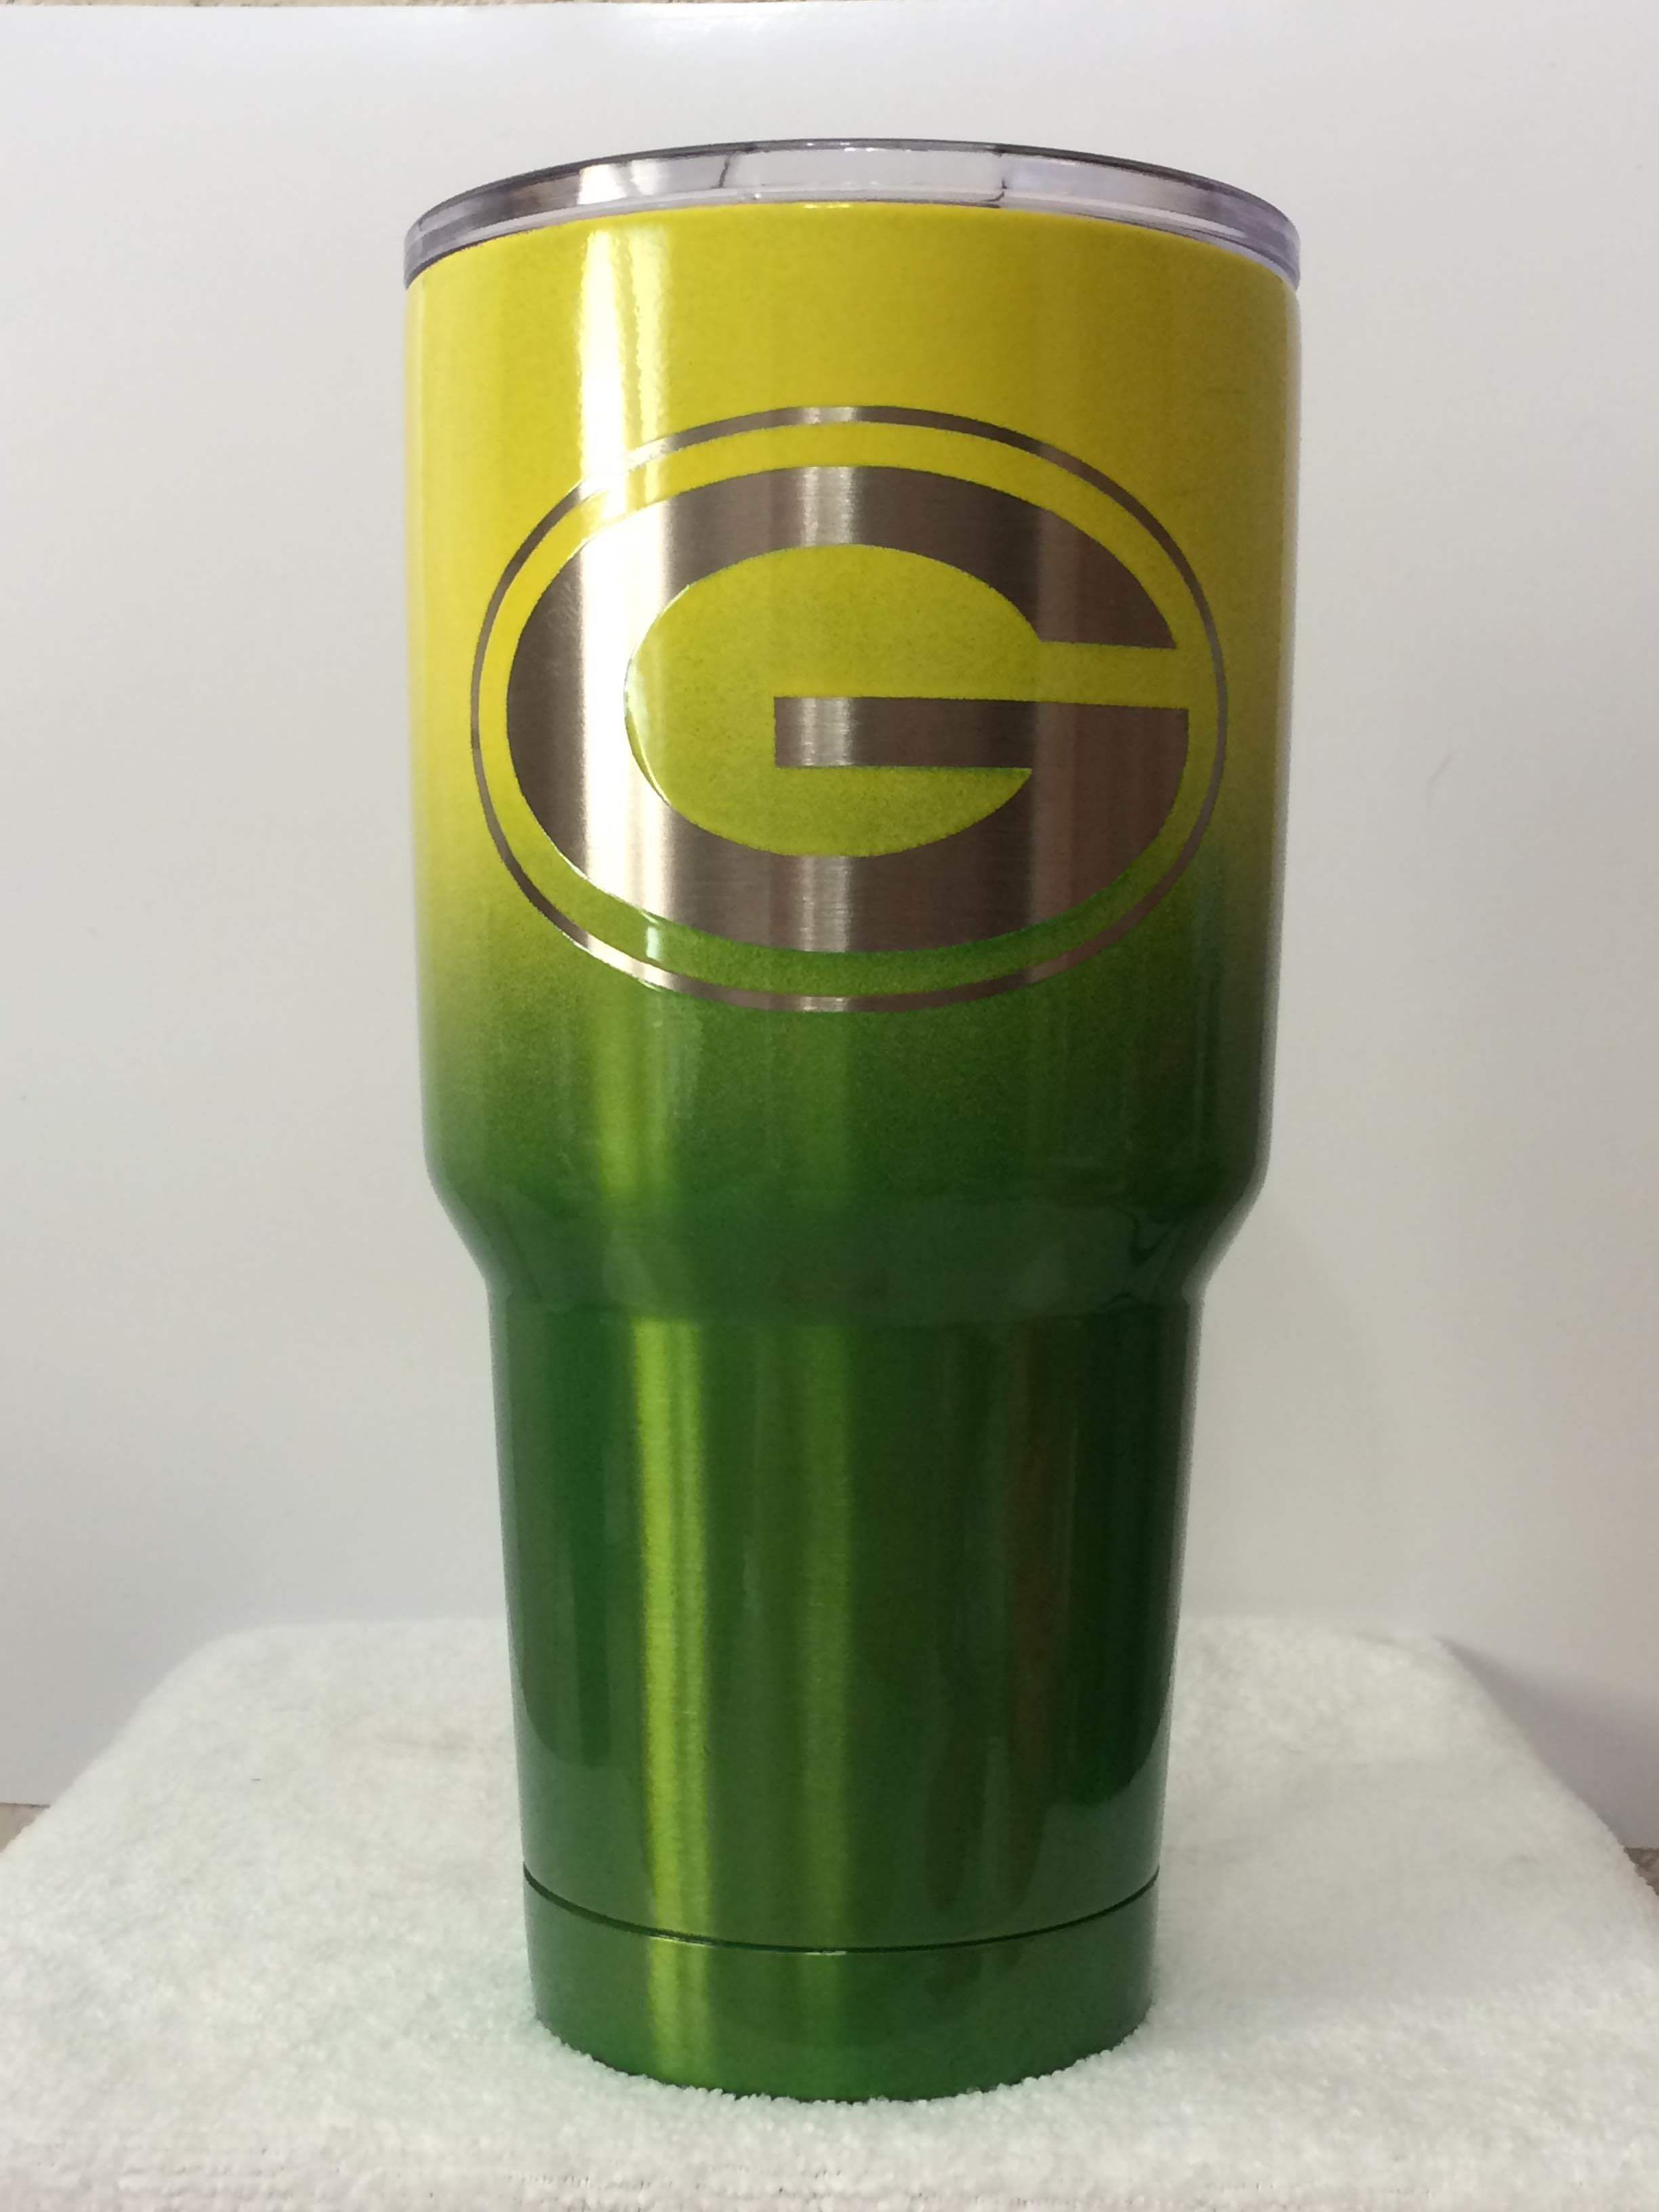 This Tumbler Is The Perfect Gift For Any Sports Fan They Cannot Fumble The Ball With Our Nfl Green Bay Packers Green Bay Packers Diy Tumbler Cups Diy Tumbler